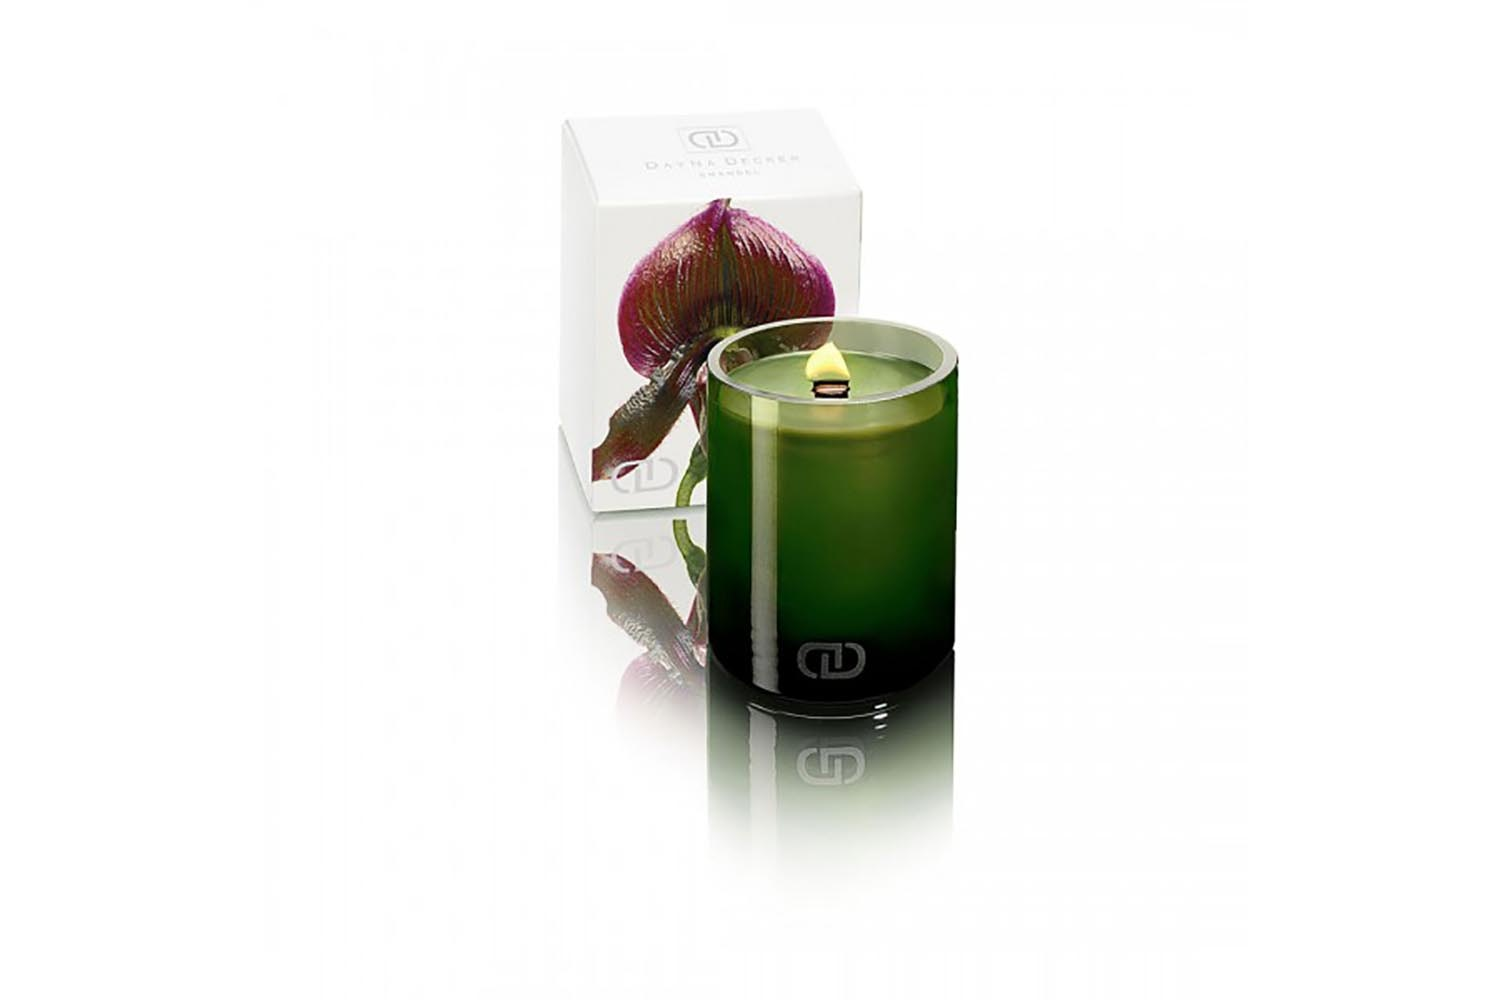 Sierra Botanika Candle 6oz by DayNa Decker